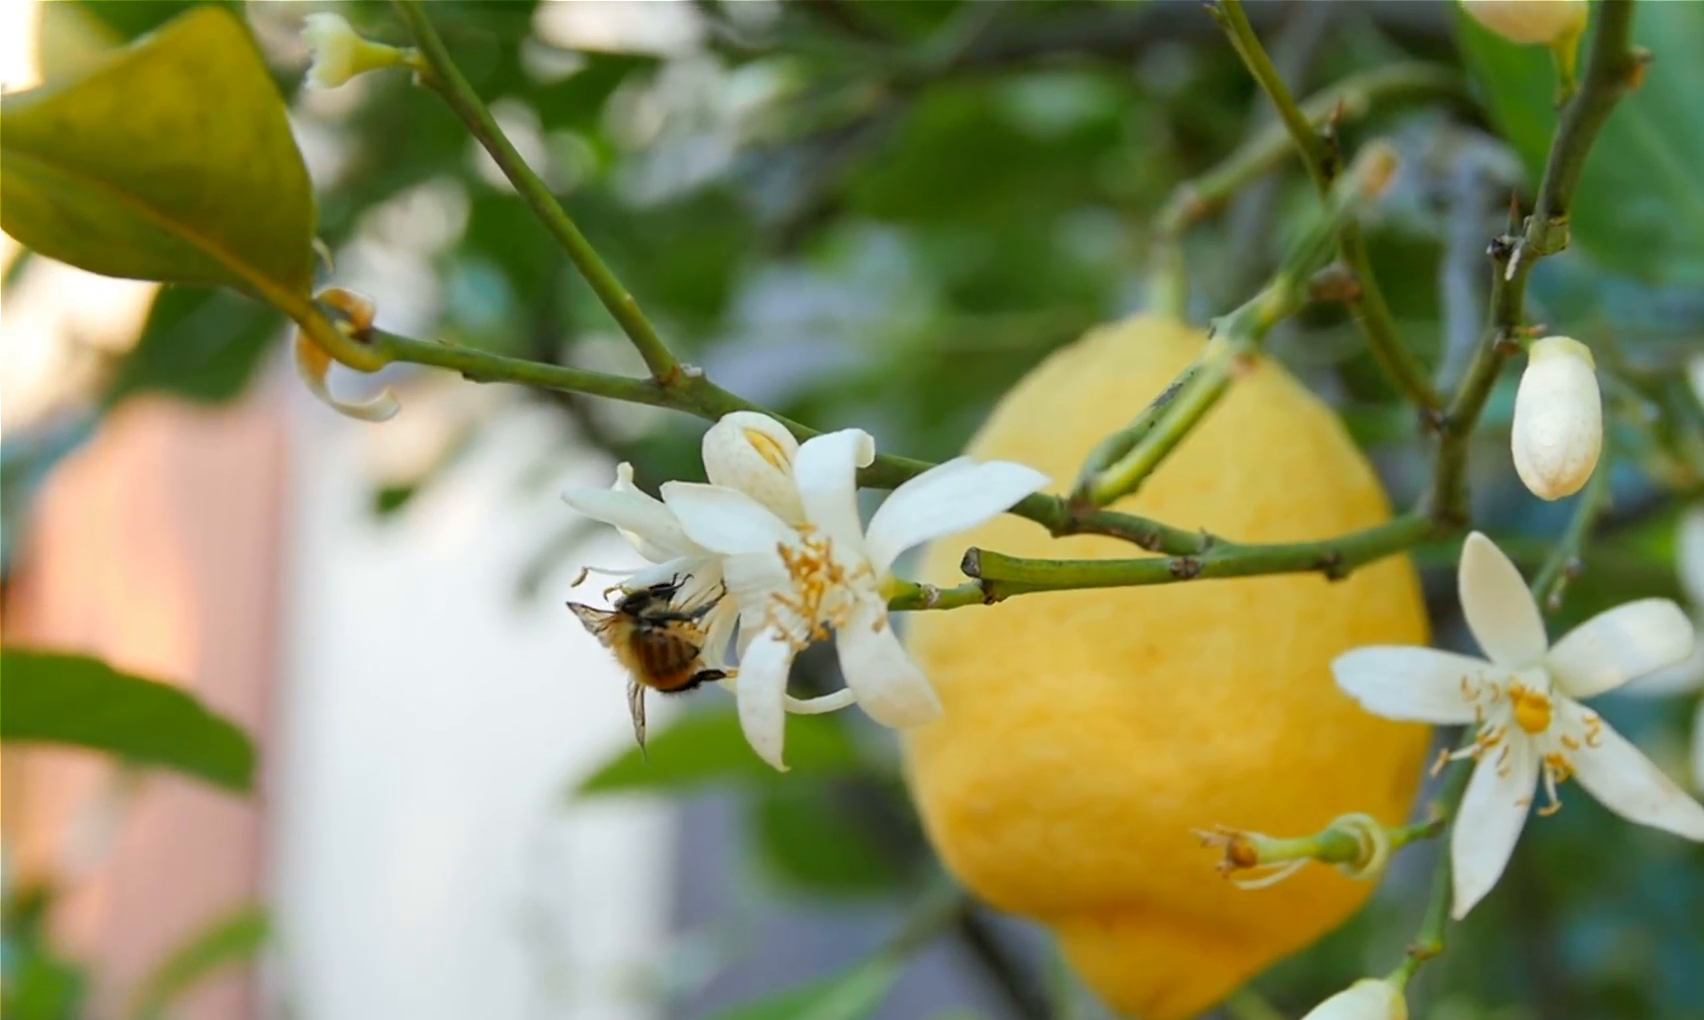 Save the bees - lemon tree